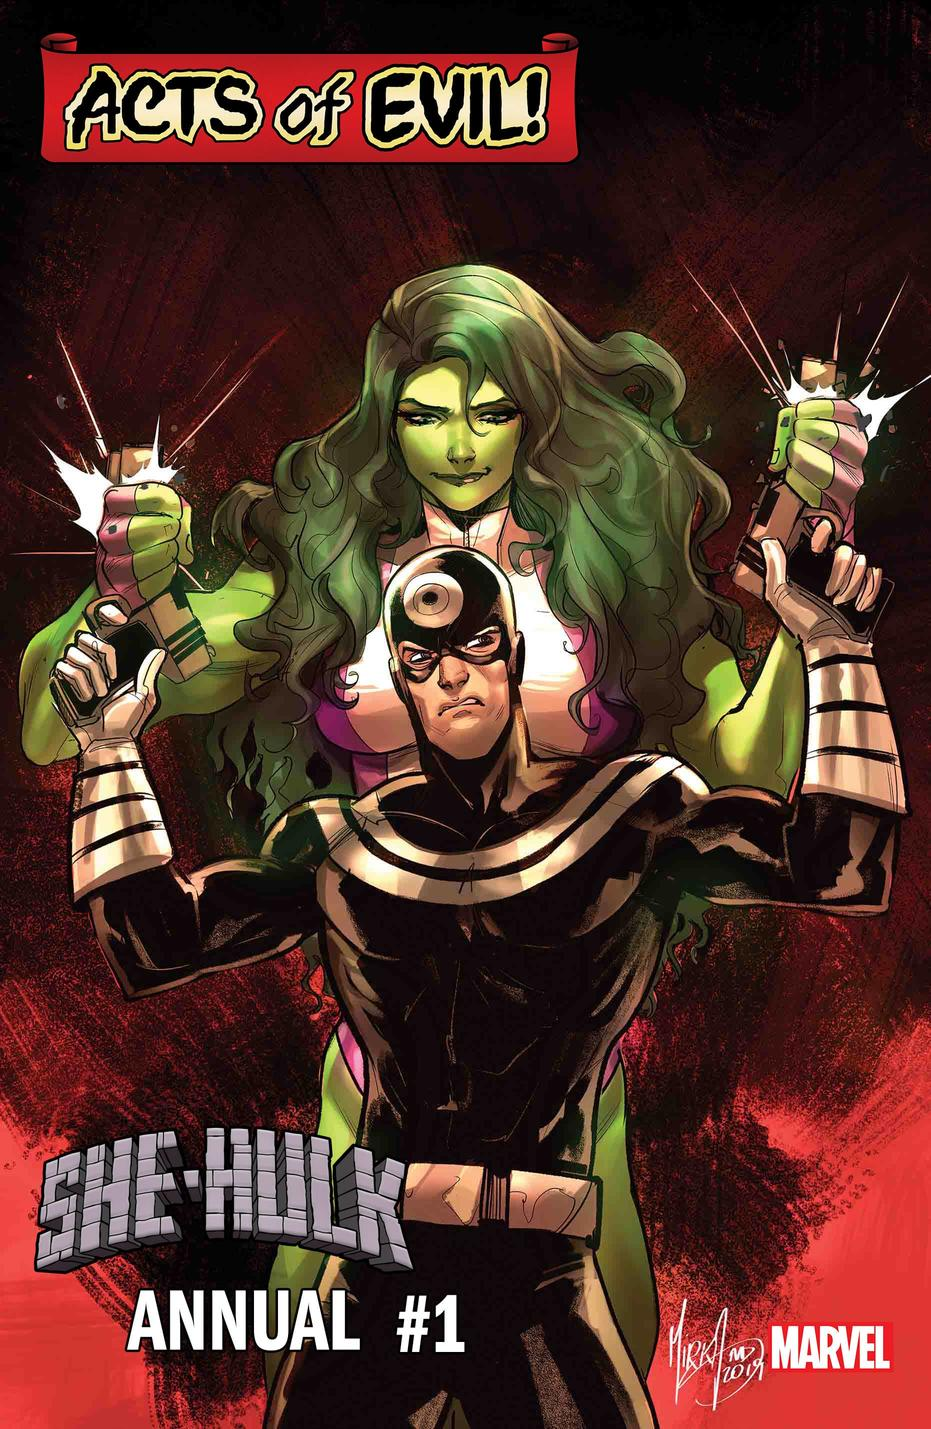 She-Hulk vs Bullseye